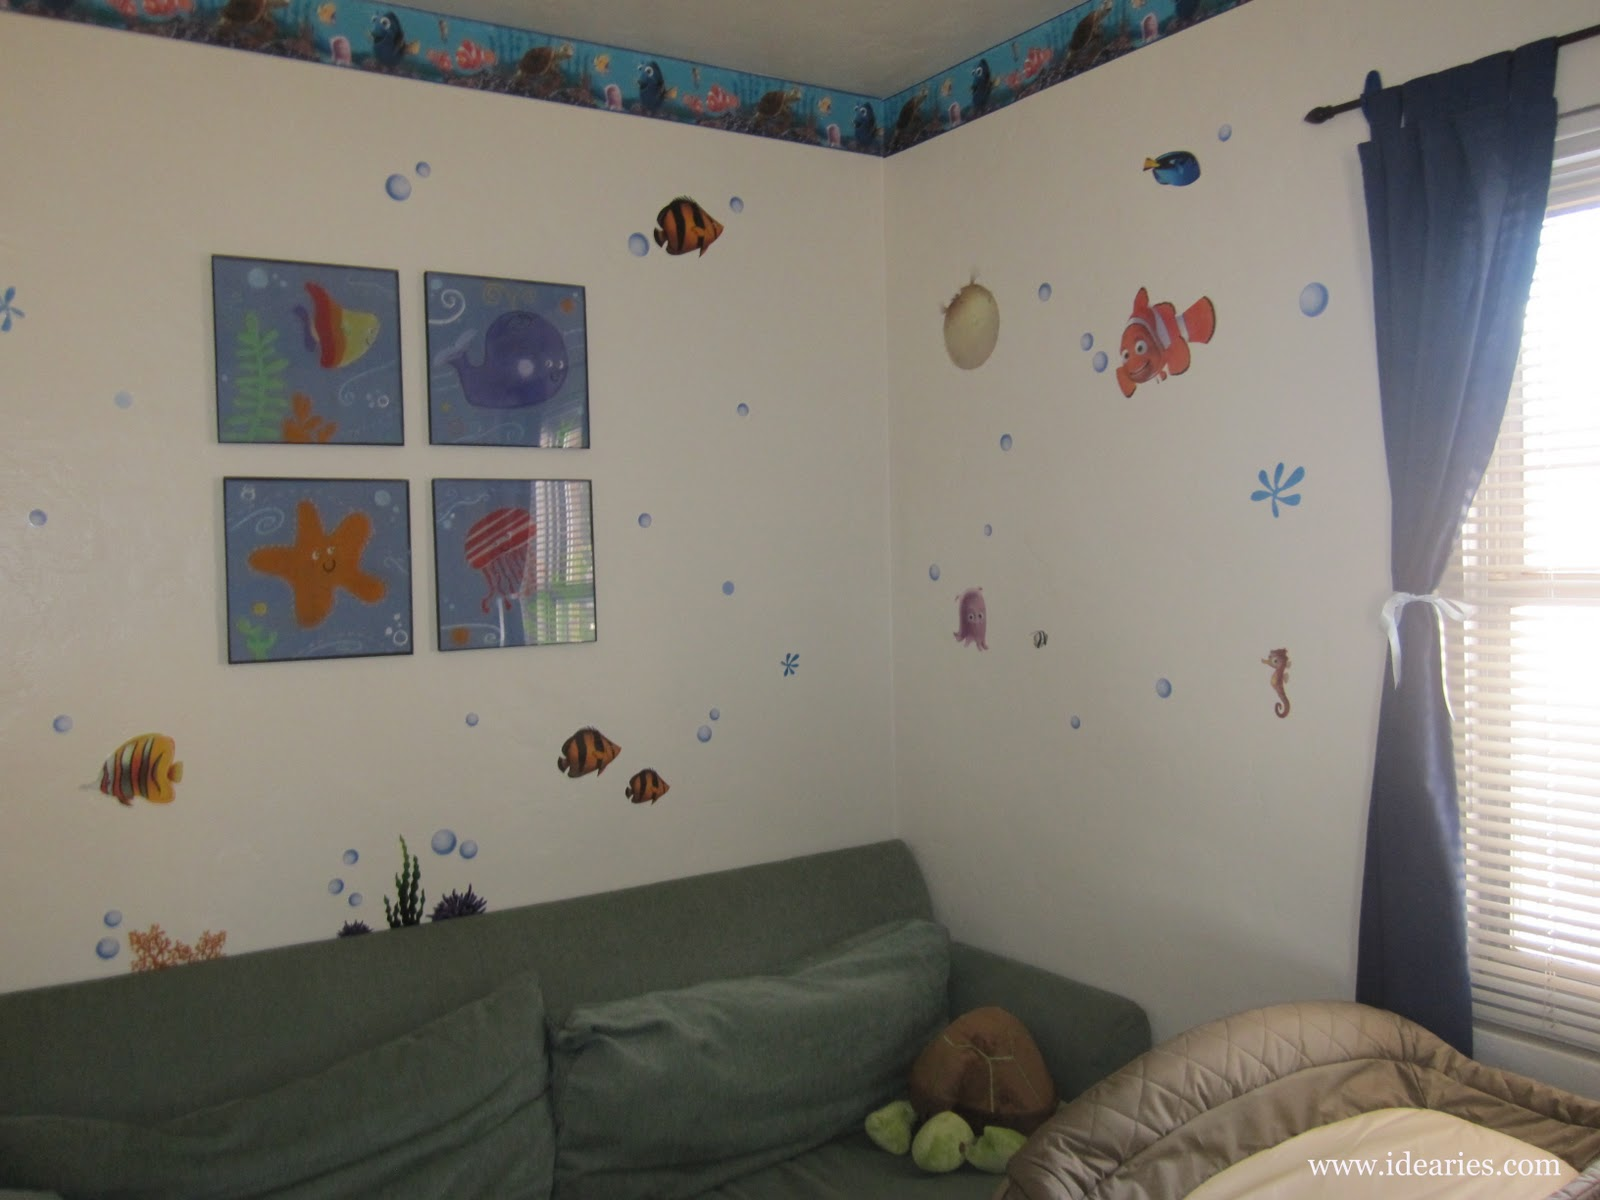 Awesome Stickable wall decals e in all shapes and themes and sites like Wee Decor and Walls Need Love are great places to start You can find ocean themed